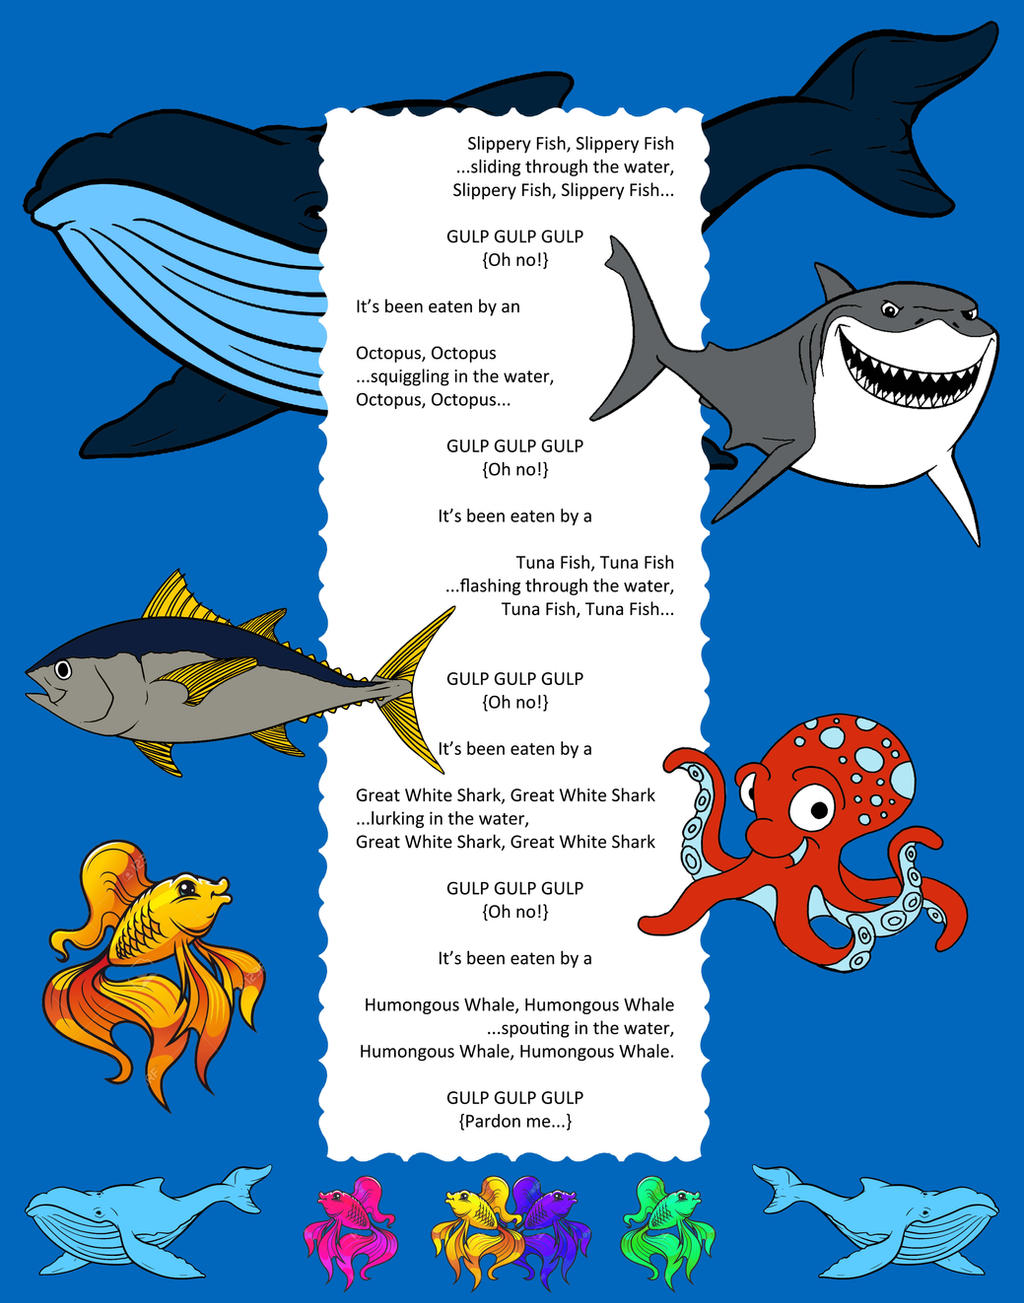 Slippery fish song by nykol haebrd on deviantart for Fish songs for preschoolers